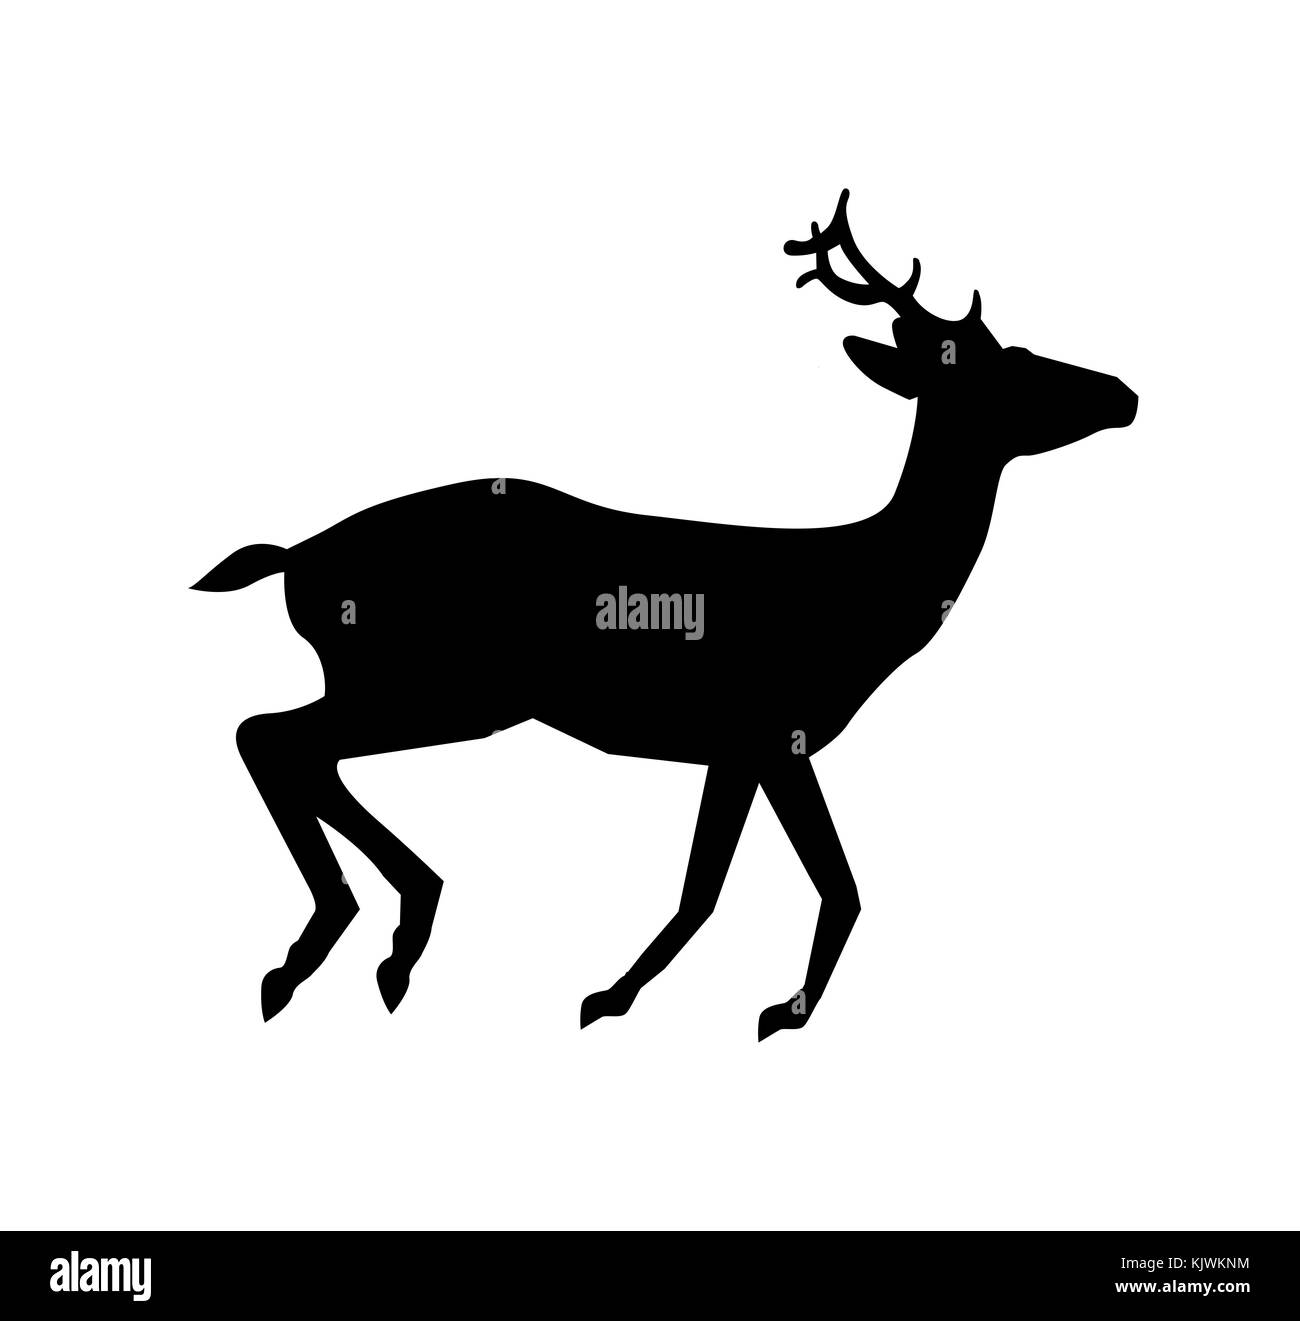 black silhouette of running reindeer isolated on white background vector illustration icon sign